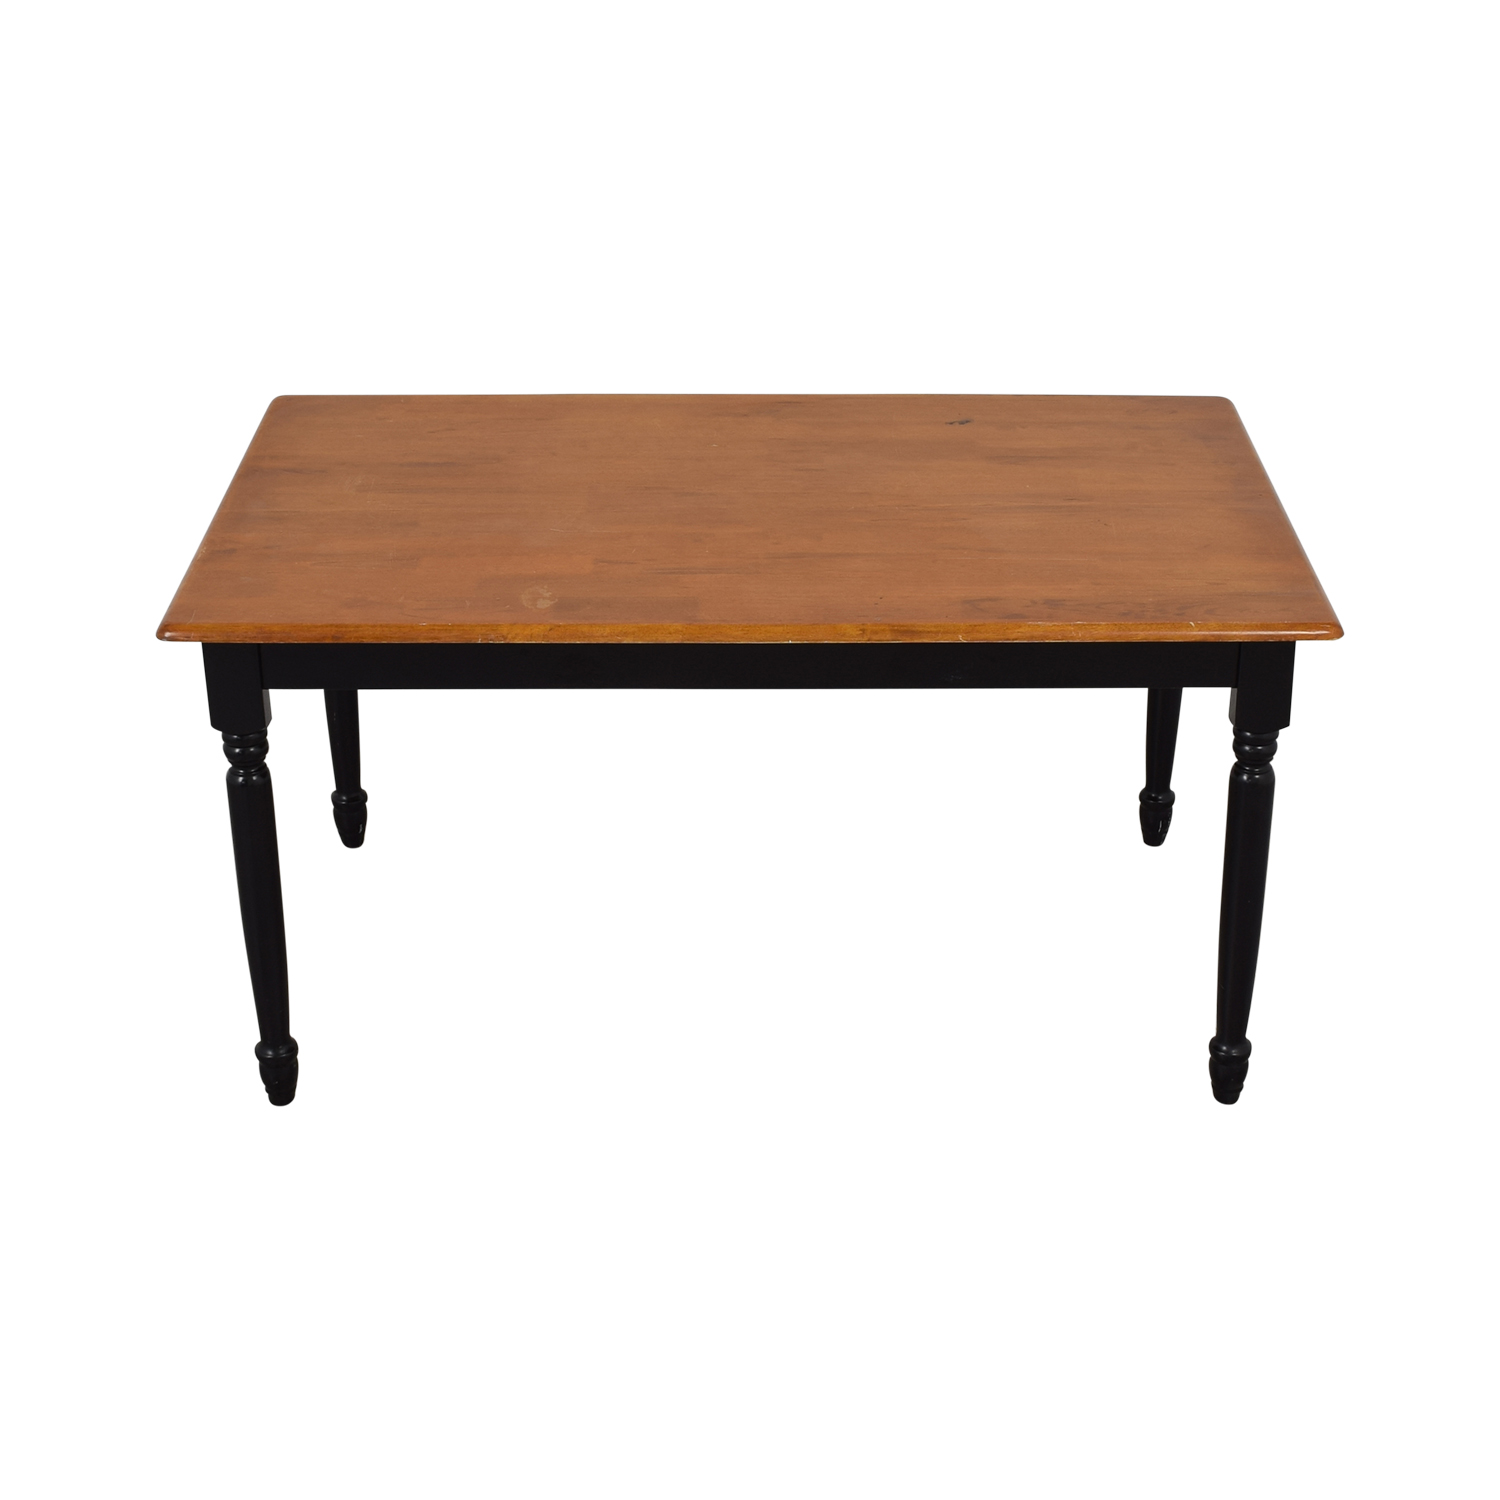 Pottery Barn Pottery Barn Wood Dining Table Tables